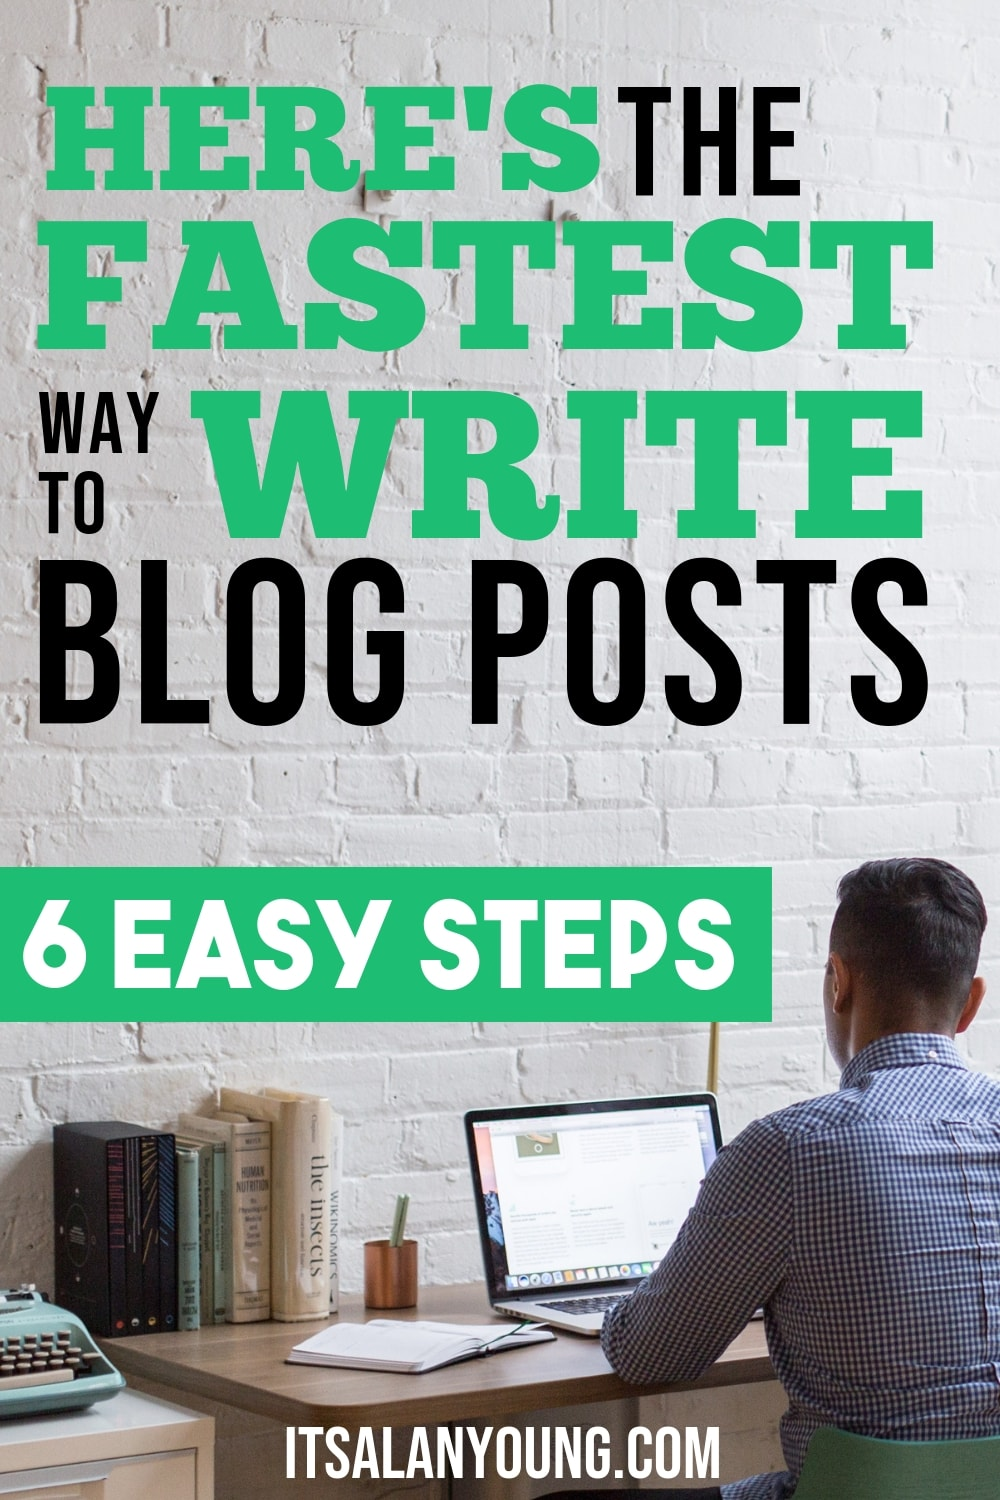 Want to write blogs post quicker than ever? Then these 6 simple steps will help you create articles faster than you thought possible. Will you be able to do step 3 even though it's super easy? Find out how. #ItsAlanYoung #Blogging #bloggingtips #Blog #Writing #writingtips